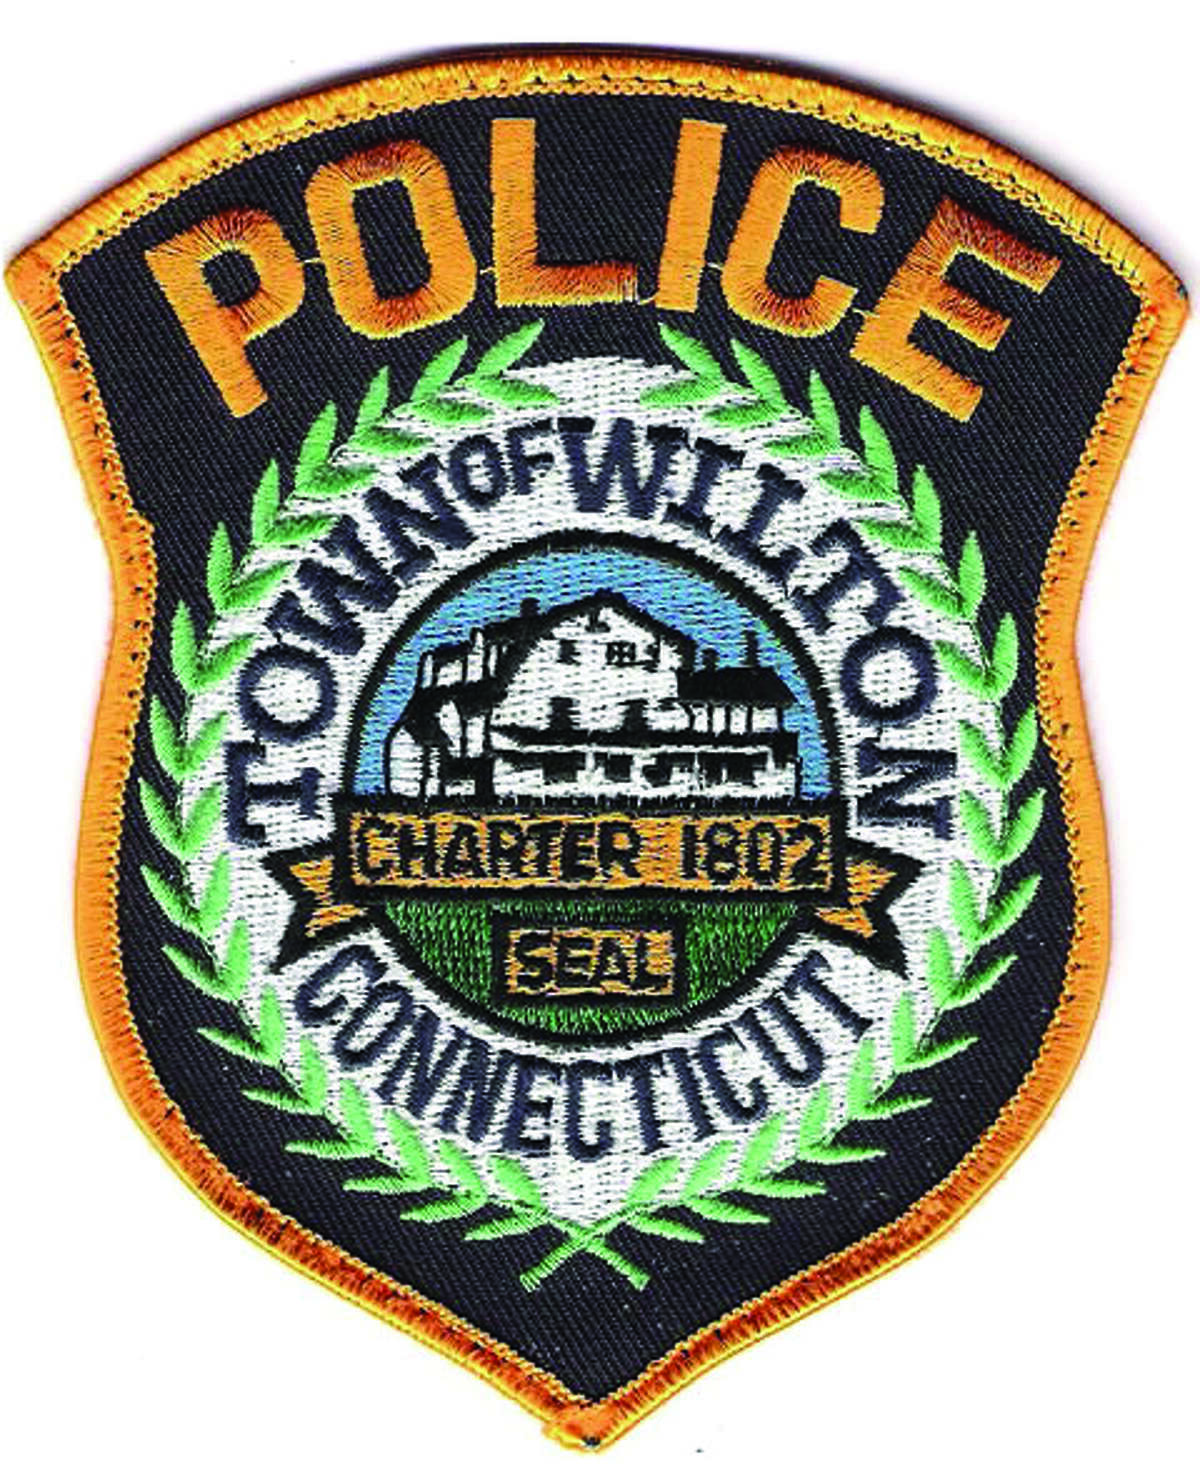 The Wilton Police Department